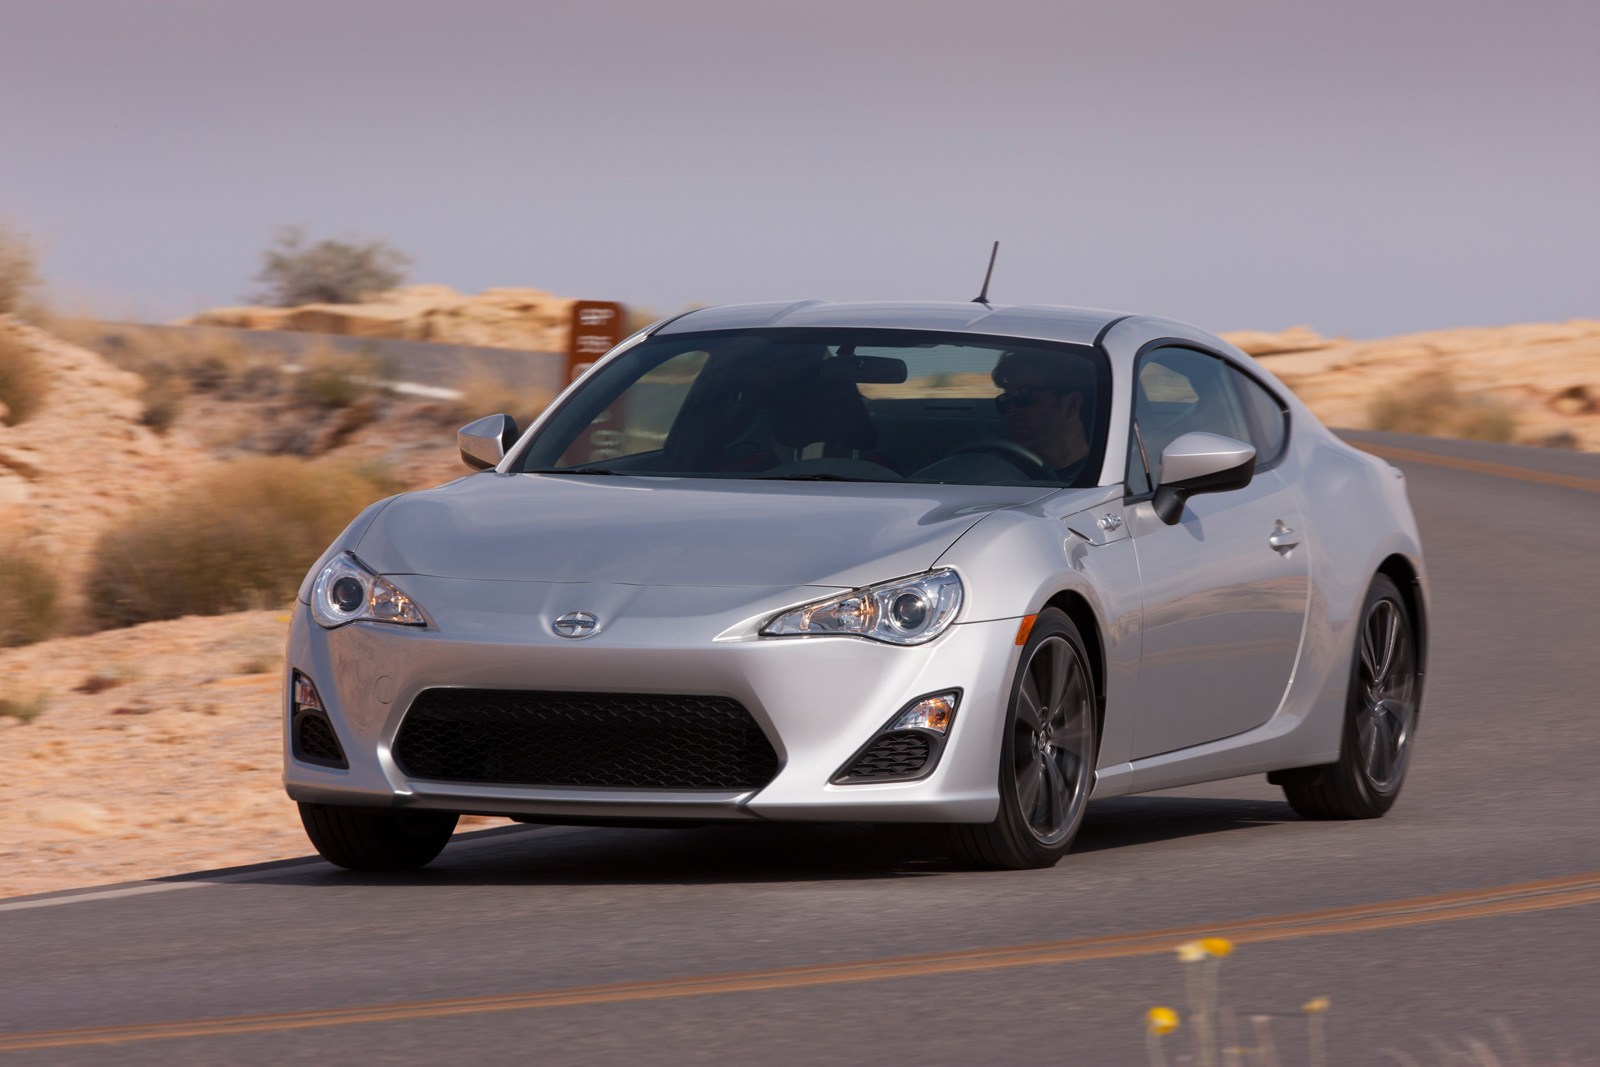 Captivating Believe It Or Not, The Scion FR S Has Been Around Long Enough That The Used  Car Market Has A Few Examples For Under $10,000.